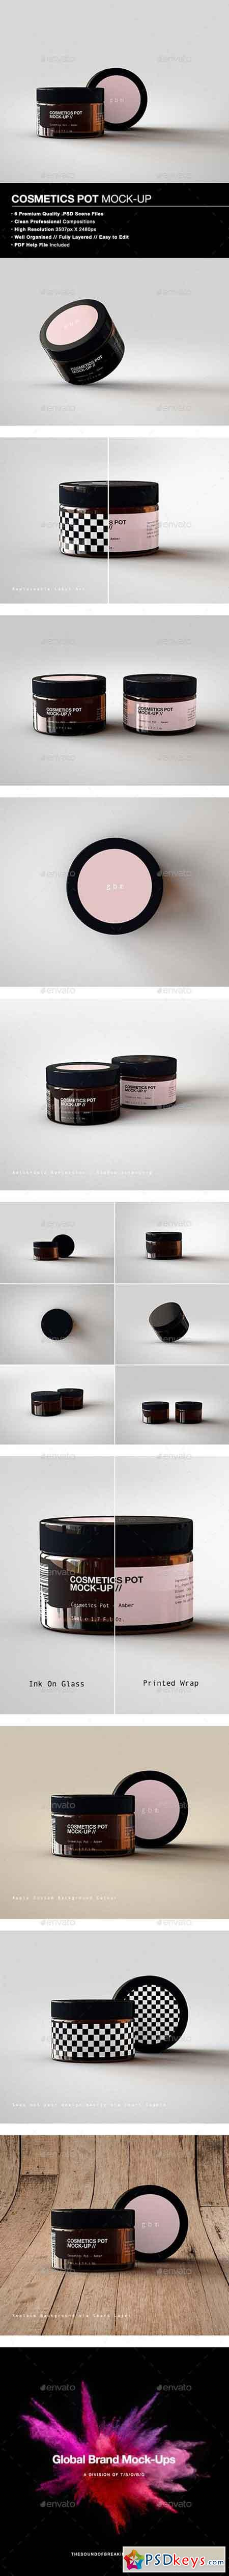 Cosmetic Pot Mock-Up 1 20257895